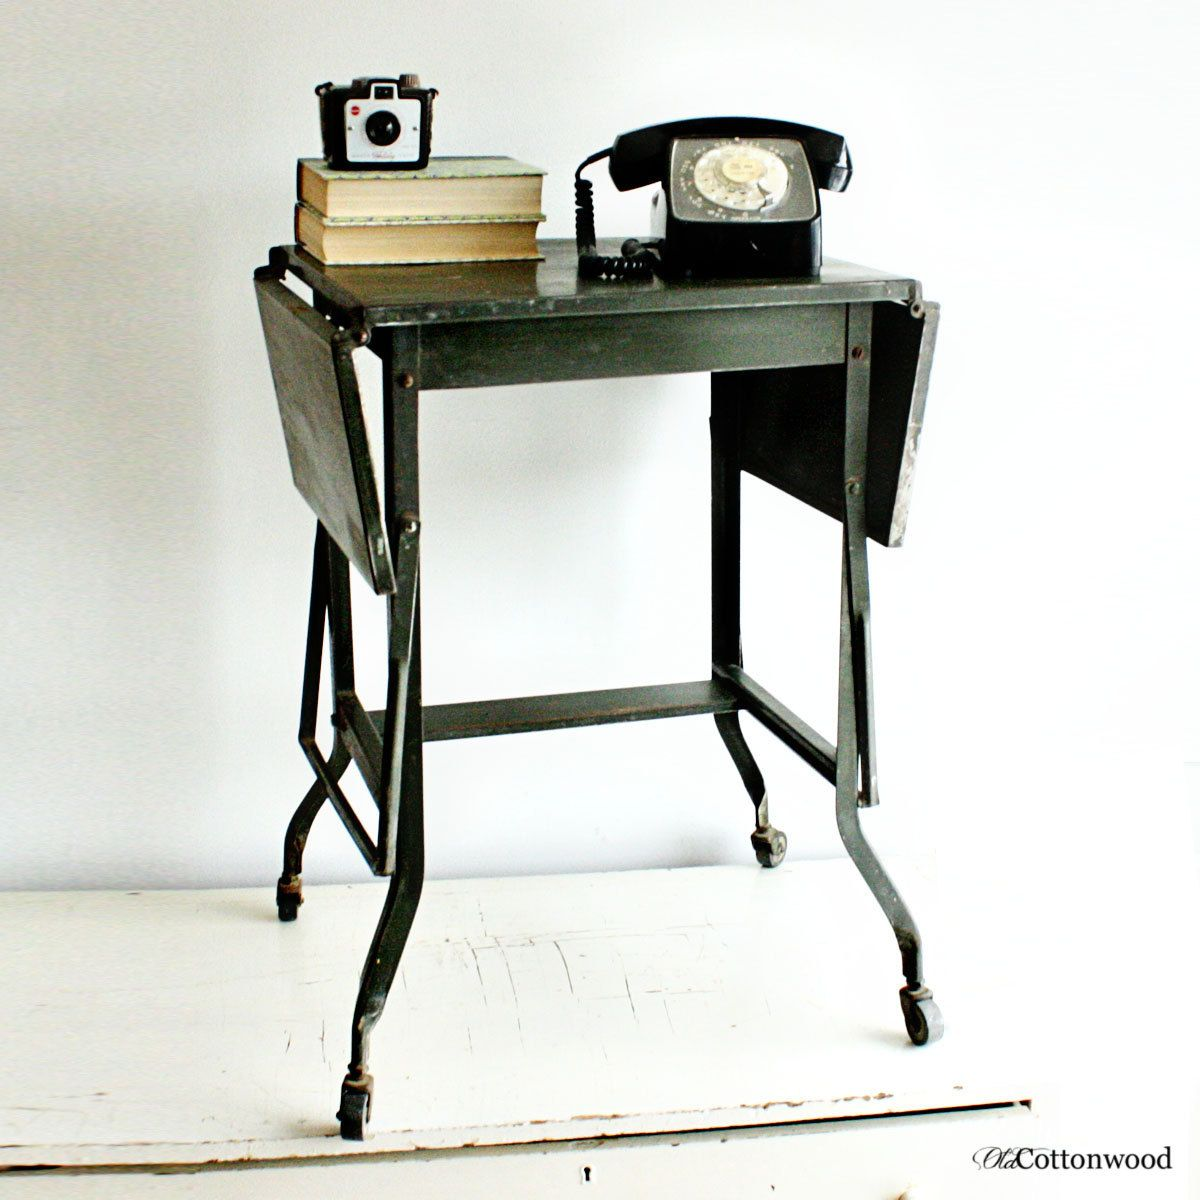 Vintage Typewriter Table   Typewriter Stand   Typewriter Cart   Industrial    Dark Green   Table